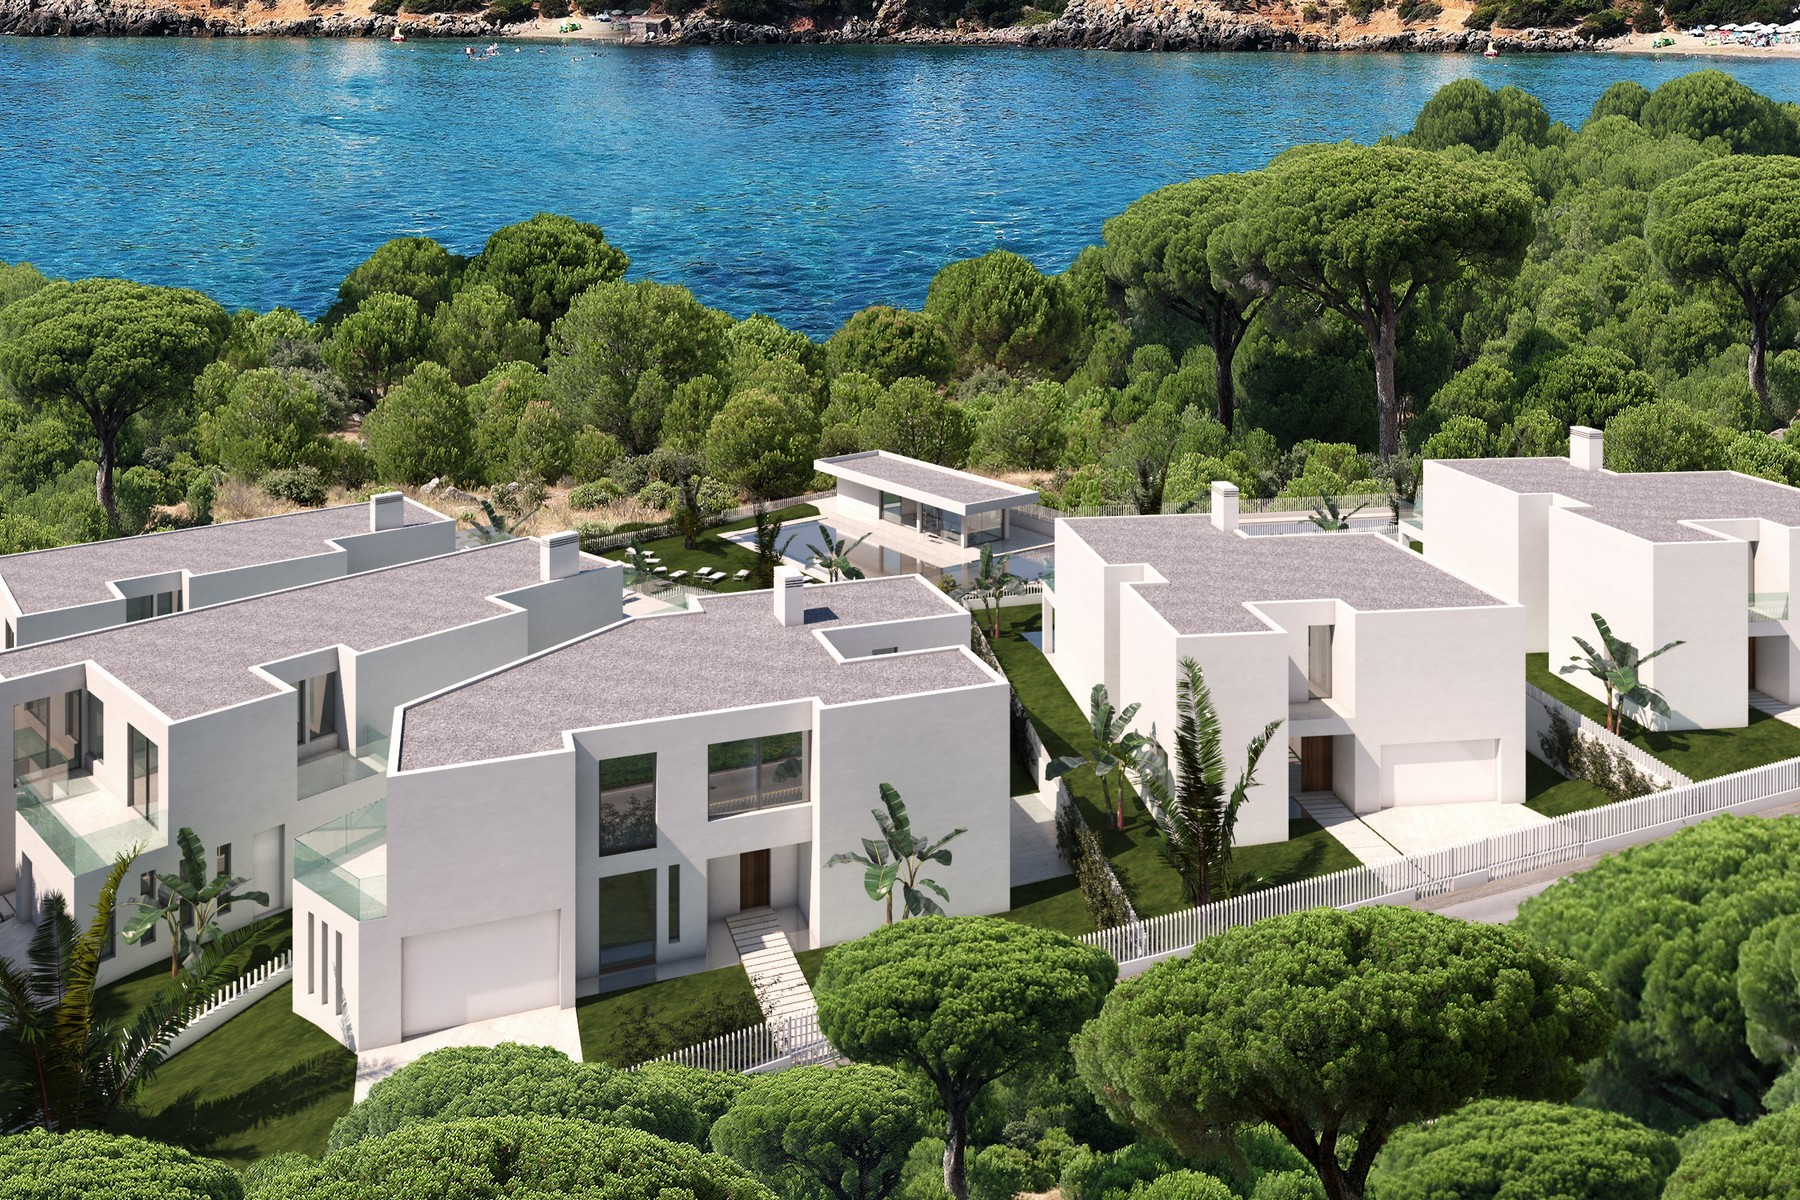 Maison unifamiliale pour l Vente à Brand New Luxury Villas Close To Sea Cala Lleña Santa Eulalia, Ibiza, 07850 Espagne